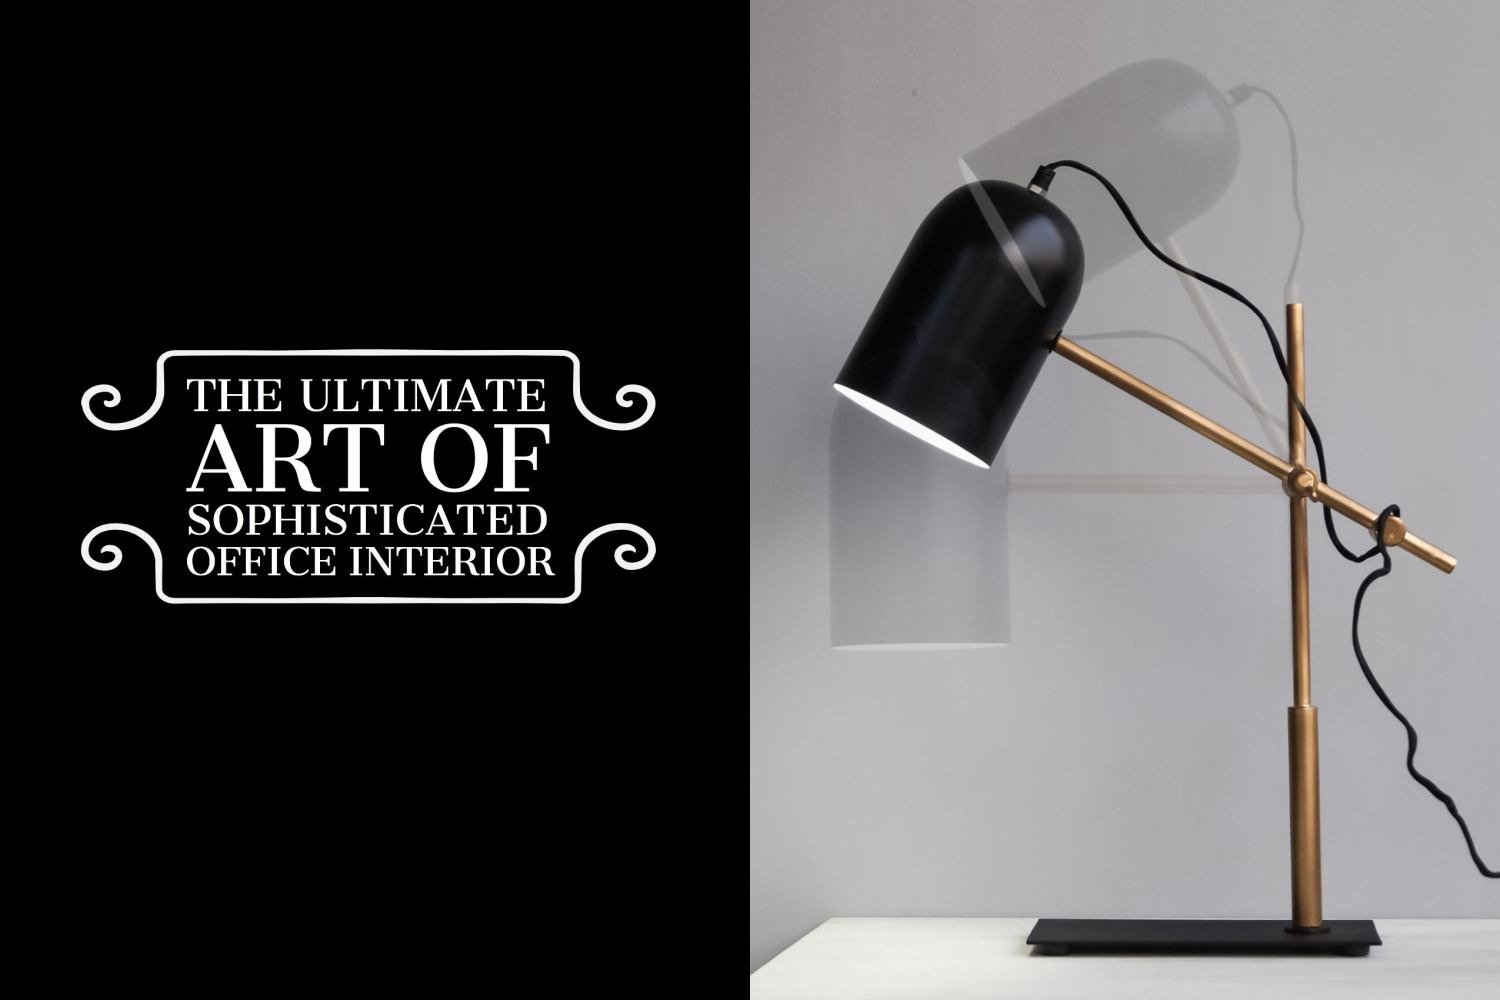 4 Industrial Lamps In Office Design Ideas That Will Make All The Difference!